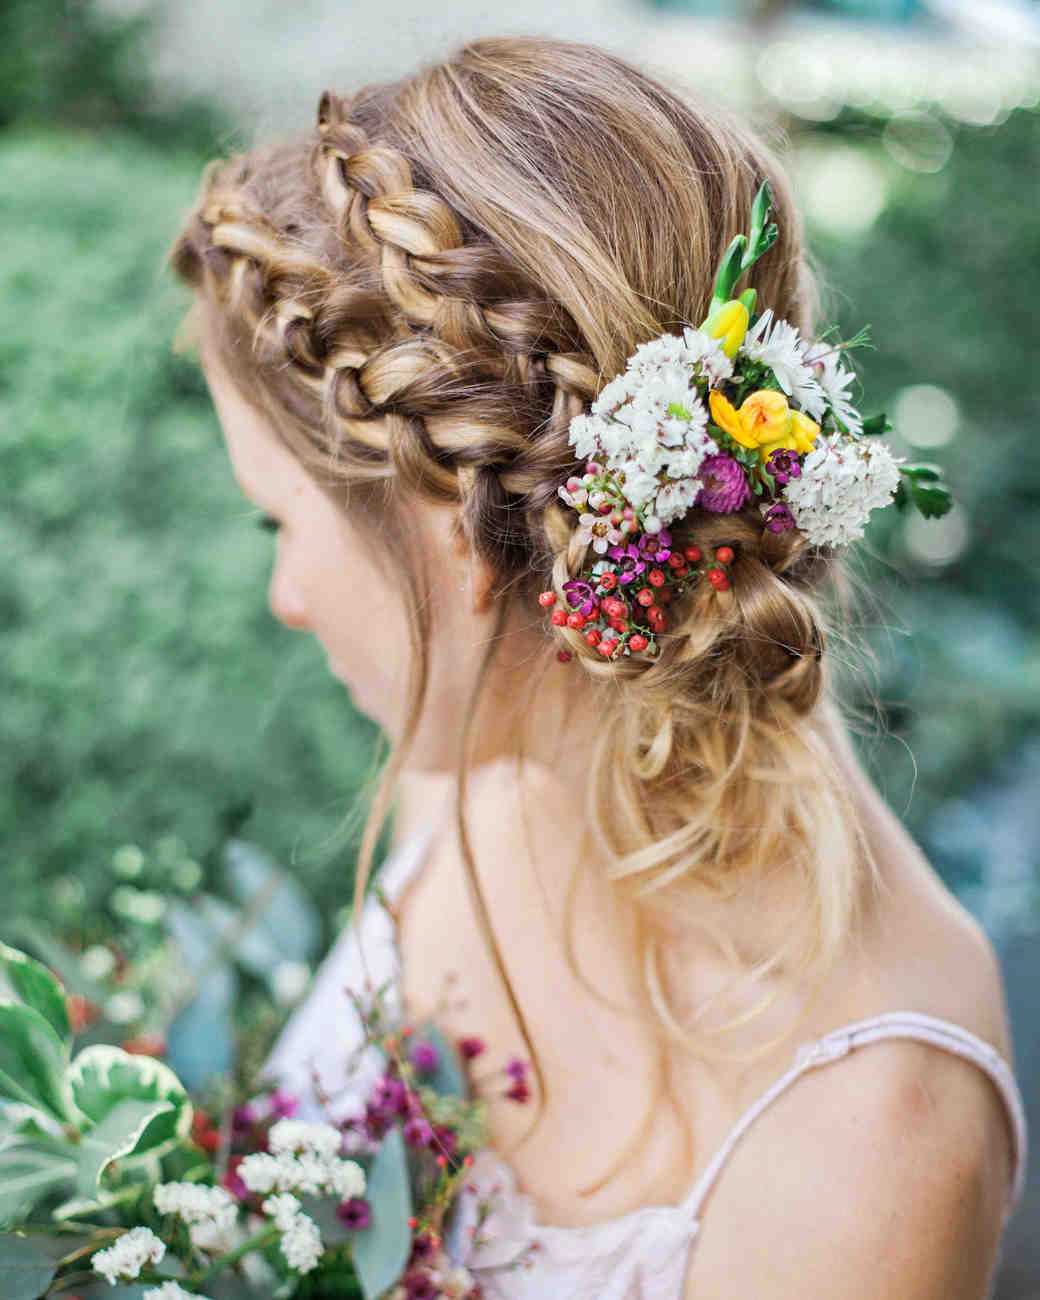 Wedding Hairstyles Braid: 10 Ways To Upgrade The Wedding Braid